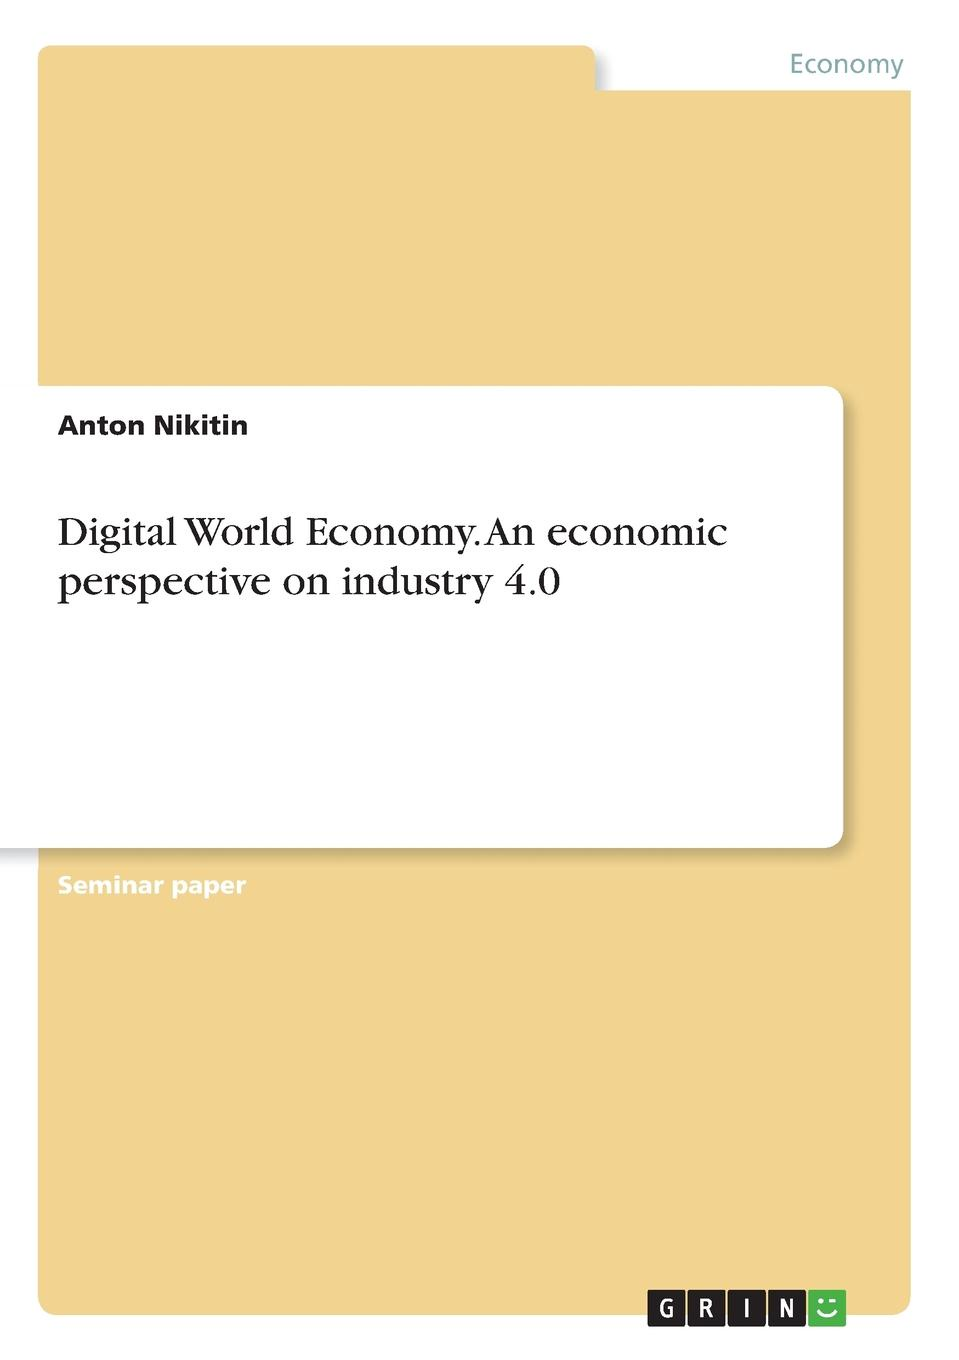 Anton Nikitin Digital World Economy. An economic perspective on industry 4.0 недорго, оригинальная цена